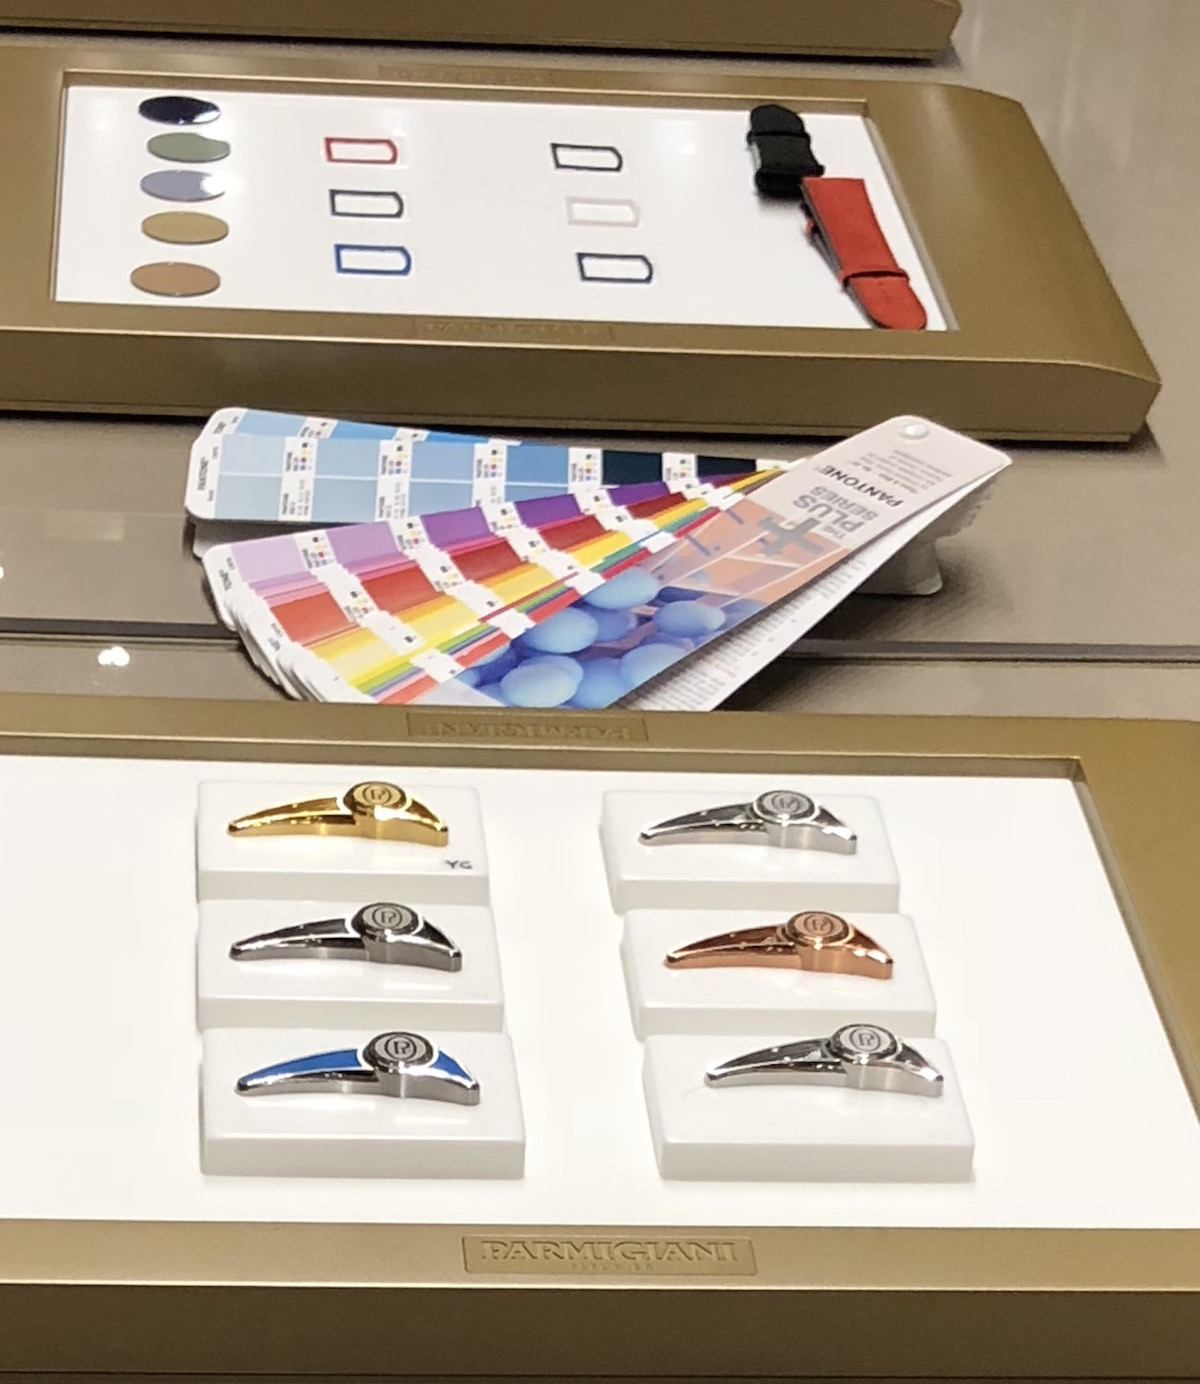 A host of colors, including Pantone hues, can be created for the inserts and accents of the Parmigiani Bugatti Type 390 Sport watch.